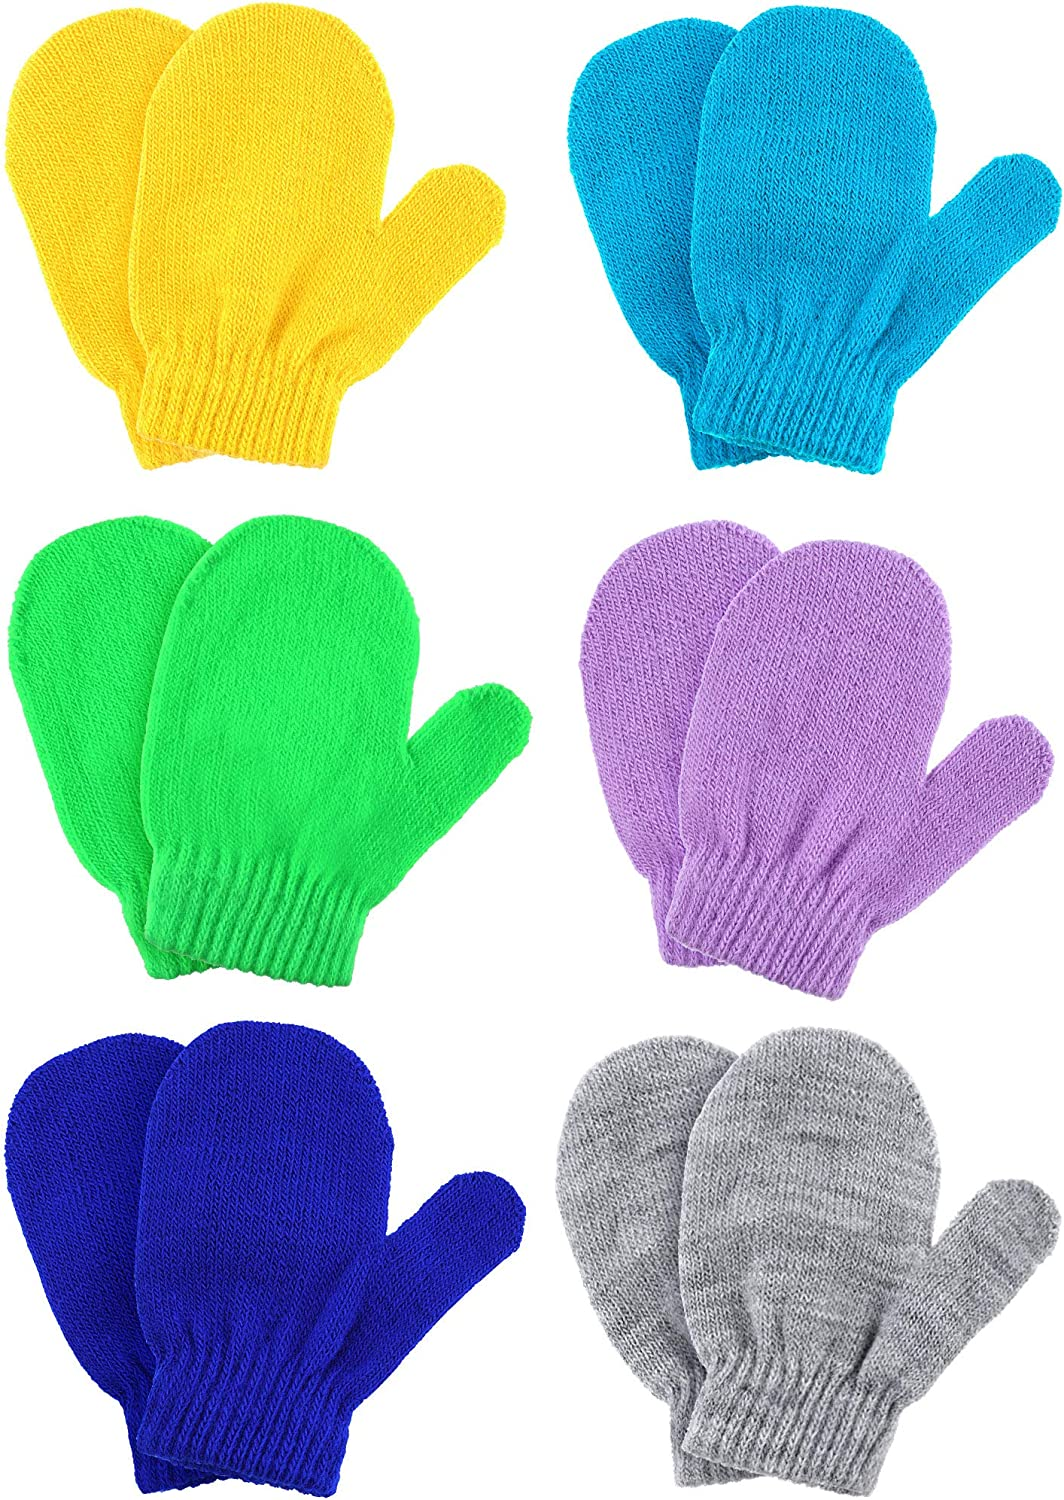 Bombing new work Boao 6 Pairs Winter Warm Stretch Max 42% OFF Gloves Knitted Mittens